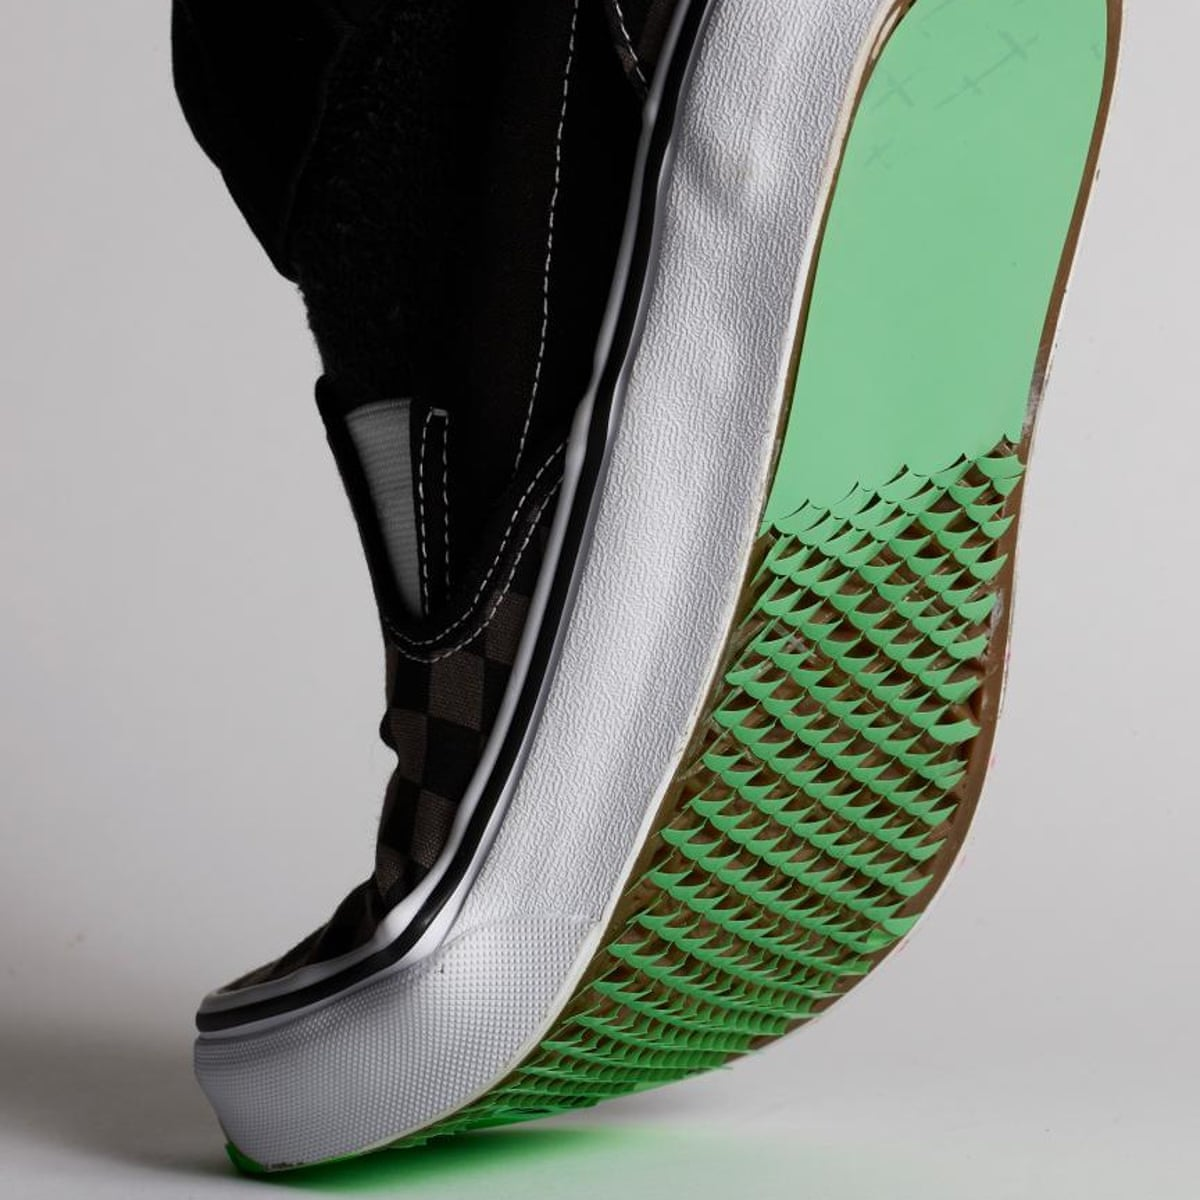 Cutting Edge Japanese Paper Art Inspires A Non Slip Shoe Technology The Guardian